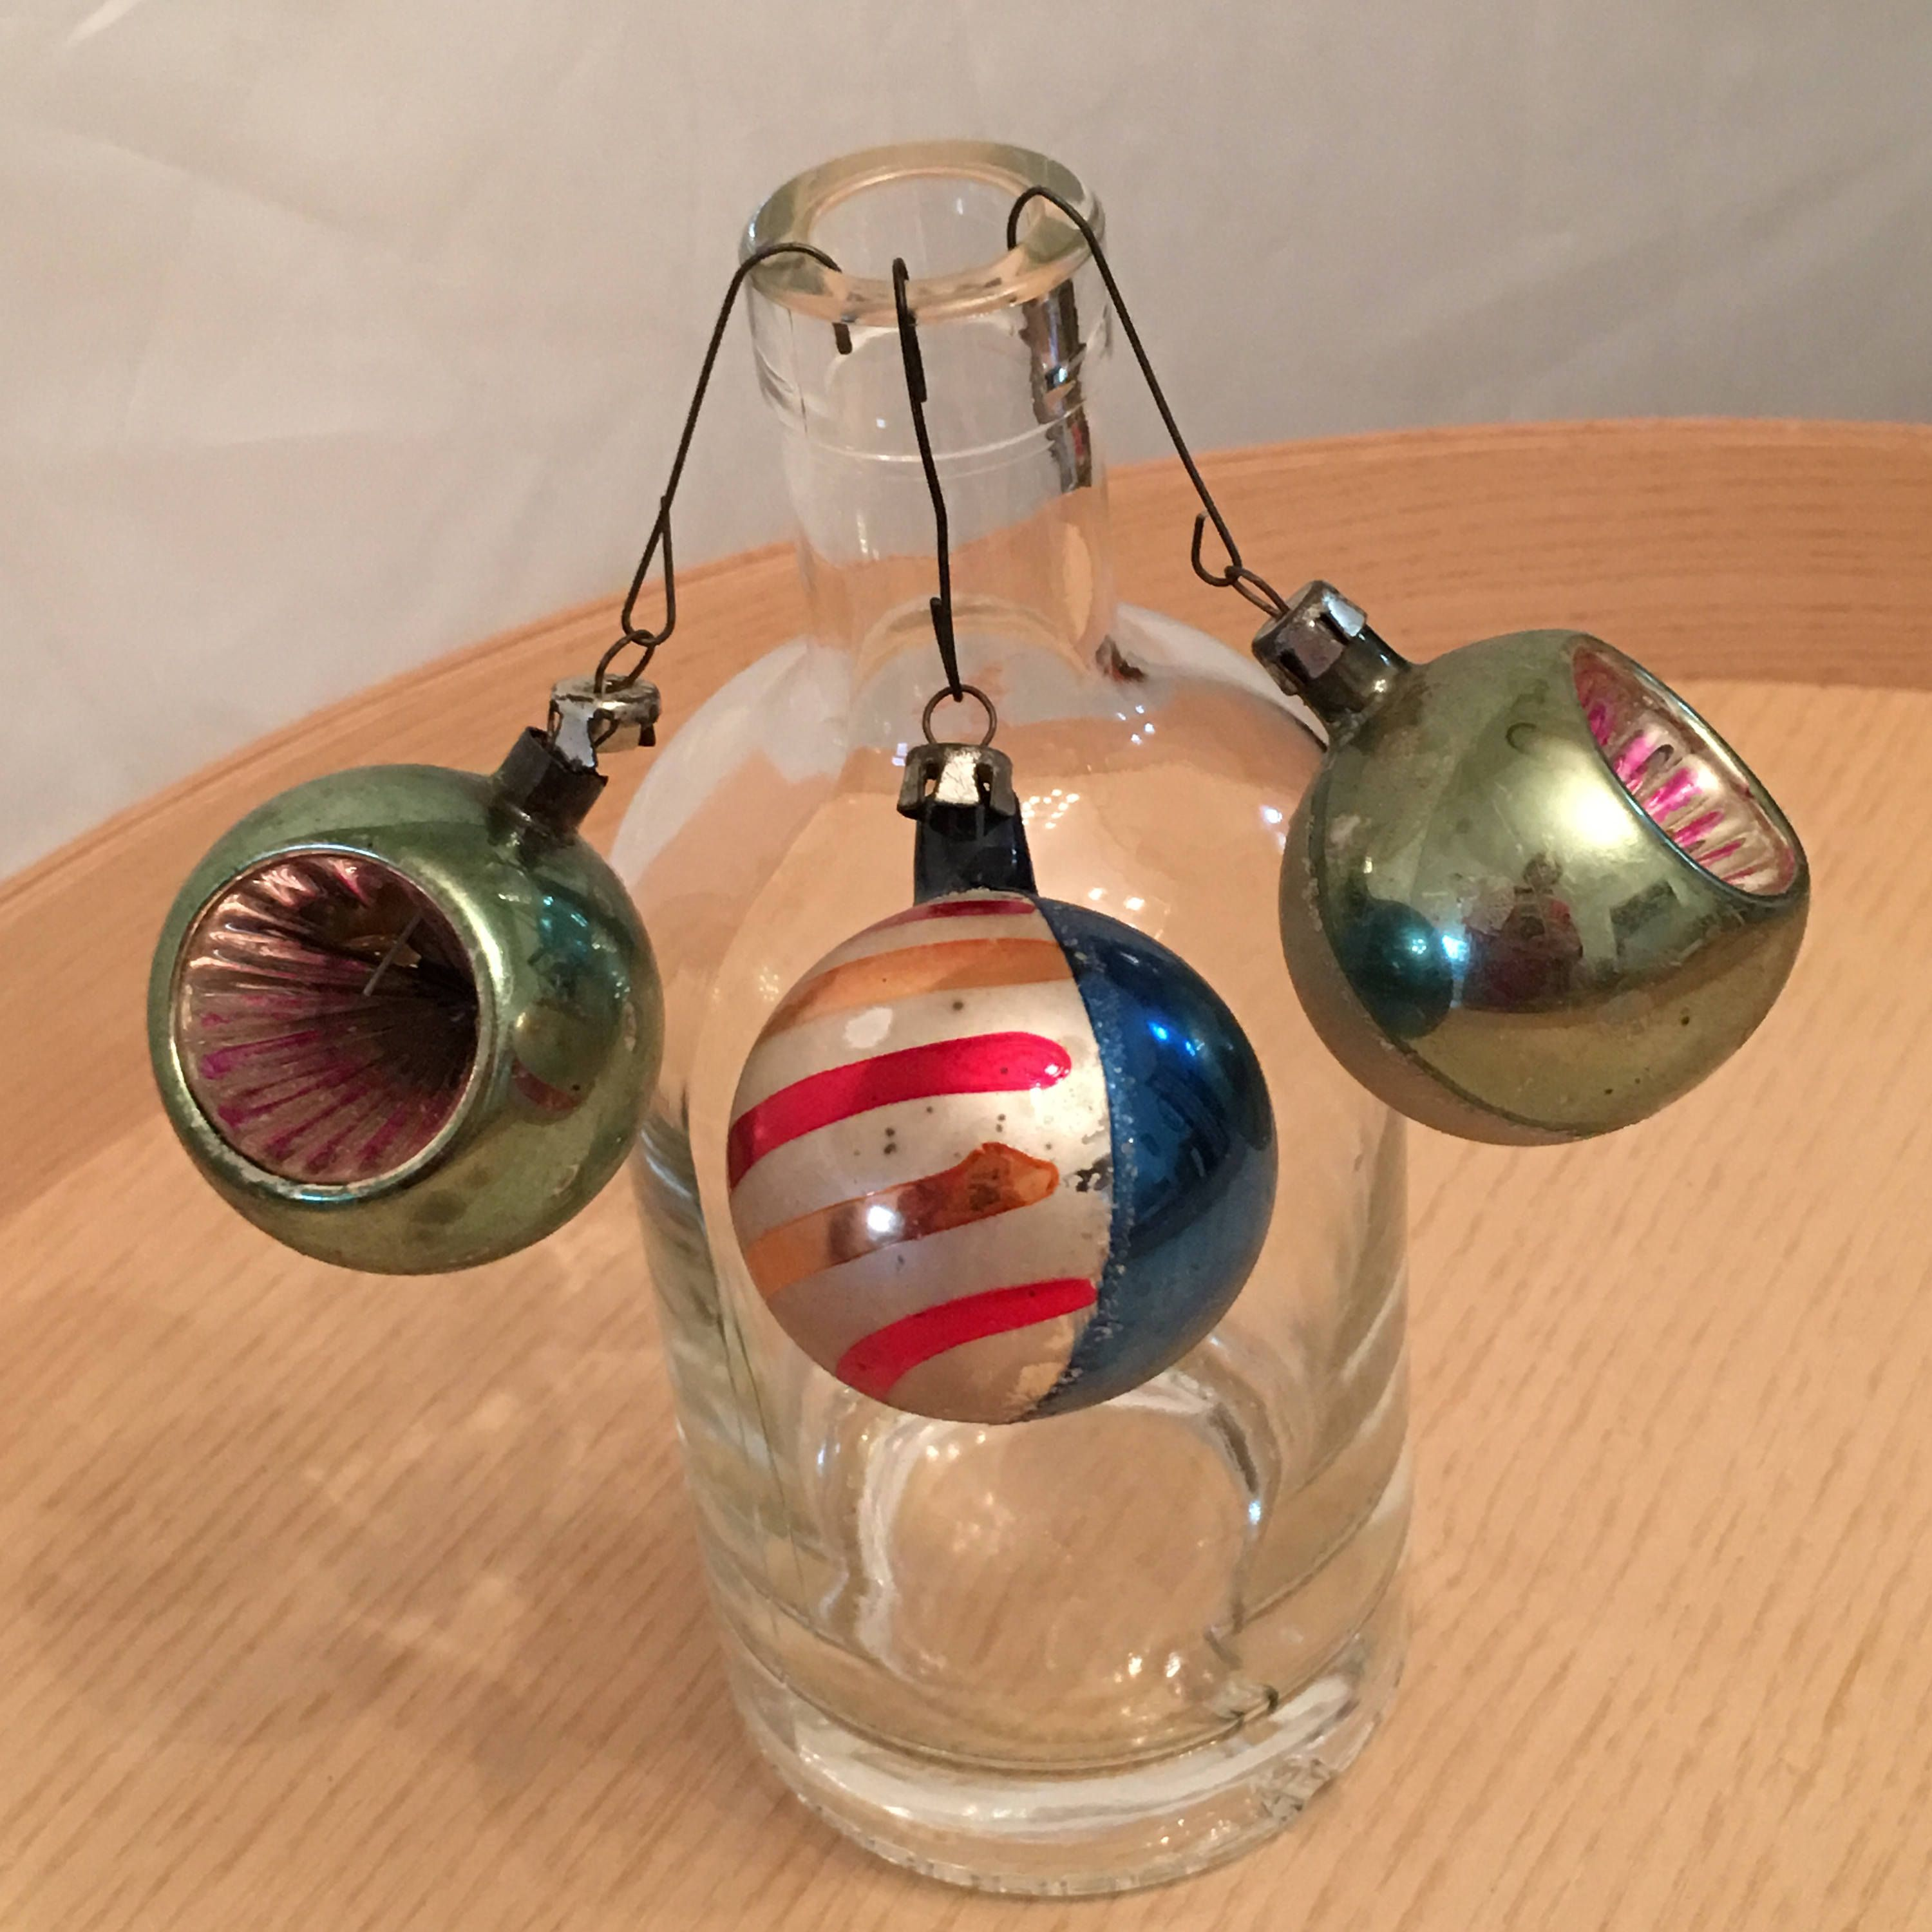 Mercury Balls Decorations Small Mercury Glass Christmas Ornaments  Miscellaneous Patterned